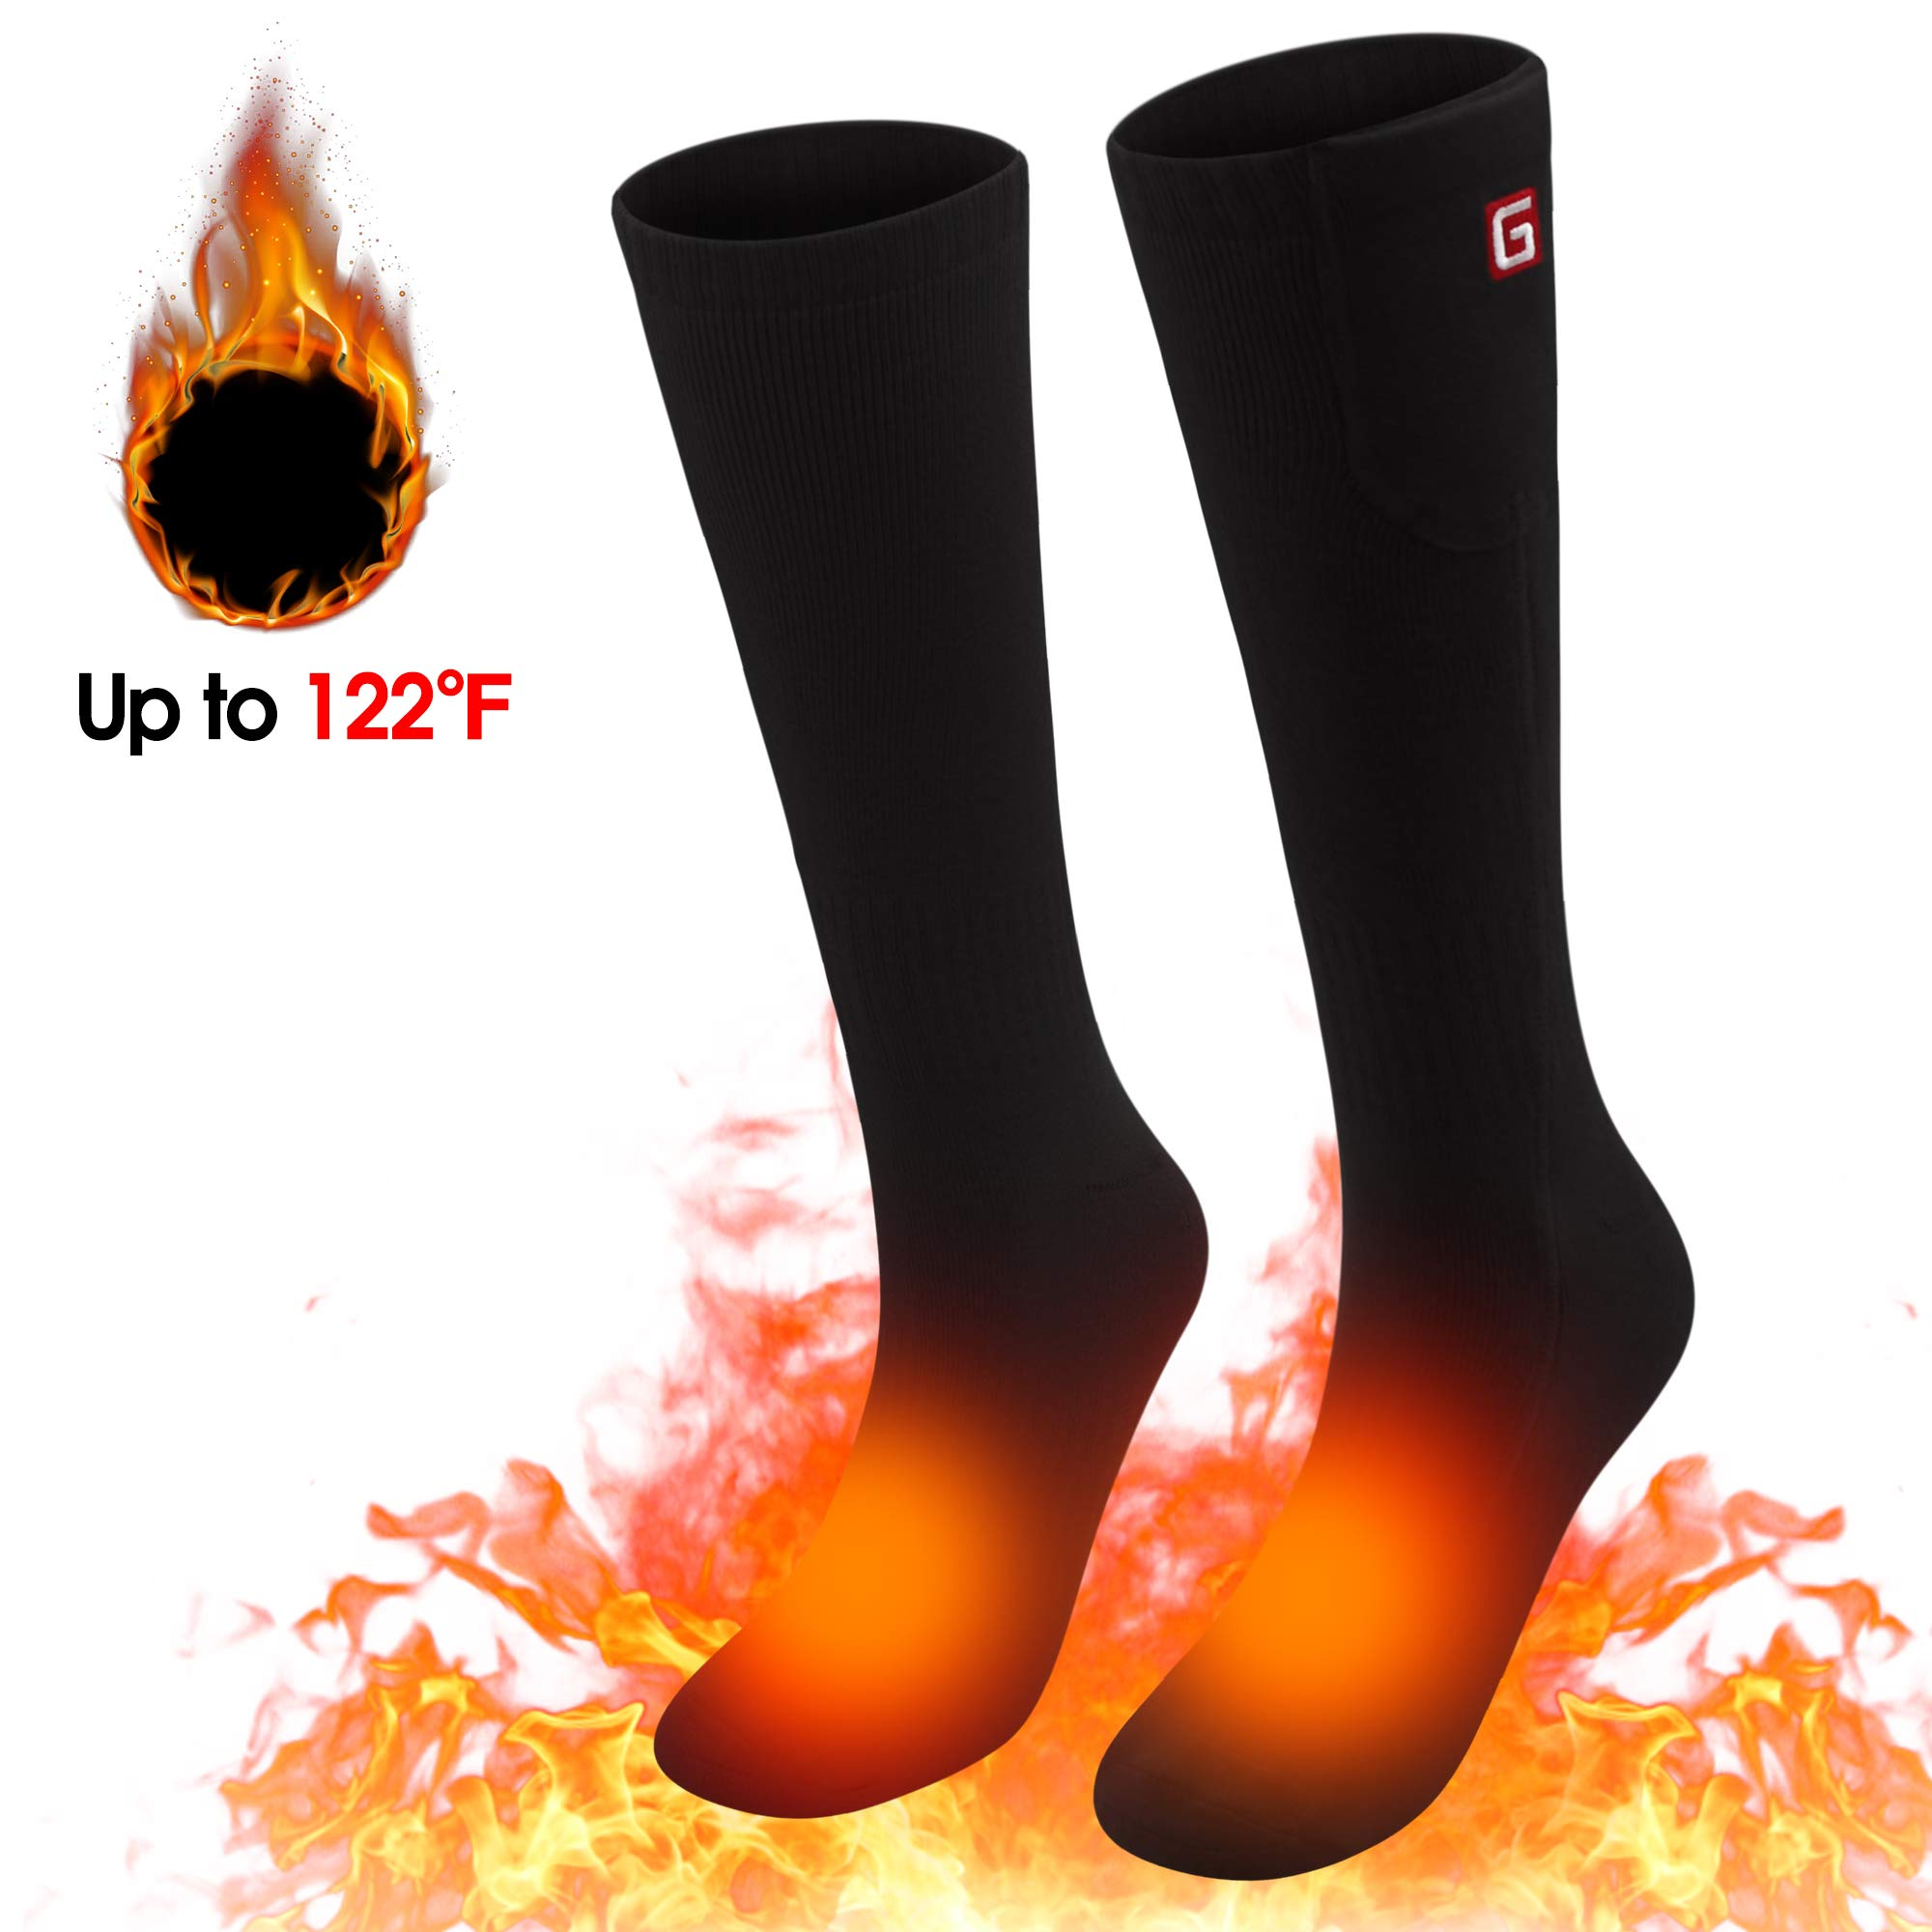 Spring Rechargeable Electric Battery Heated Socks for Men Women,3 Heating Settings Thermal Sock,Winter Warm Heated Sock for Climbing,Hiking,Riding,Skiing by SPRING SHOP